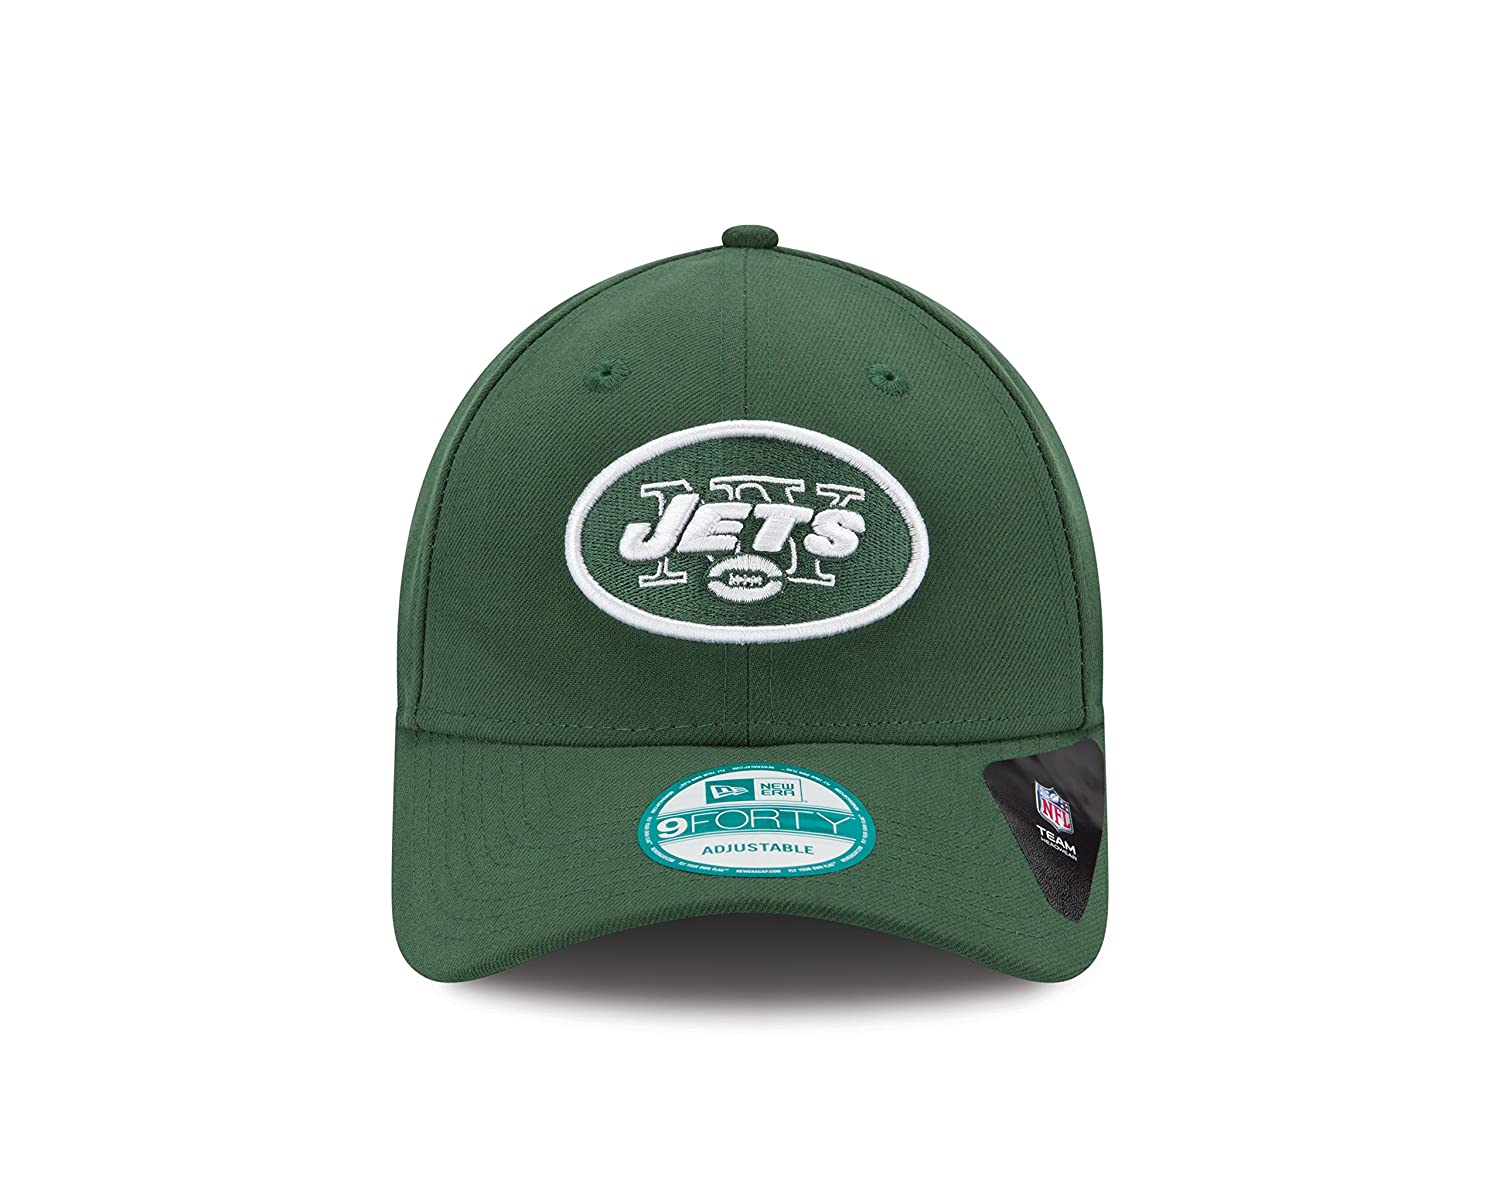 finest selection 8a665 bfd6a New Era Men s 9forty New York Jets Baseball Cap, Green (Team), One Size   Amazon.co.uk  Clothing